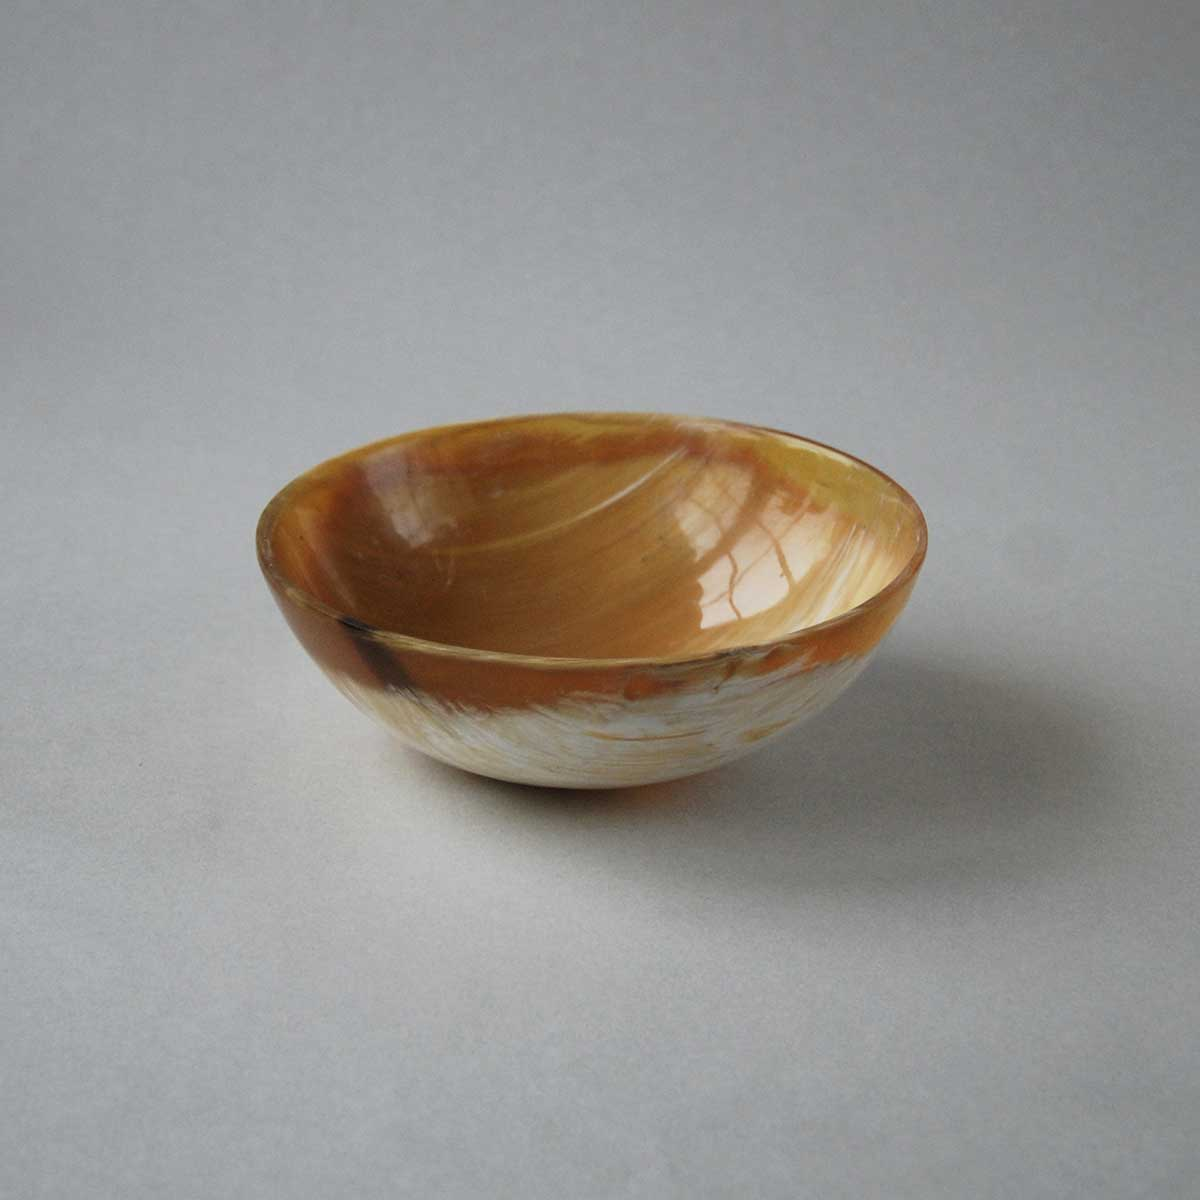 Bowl-golden-01-1200x1200